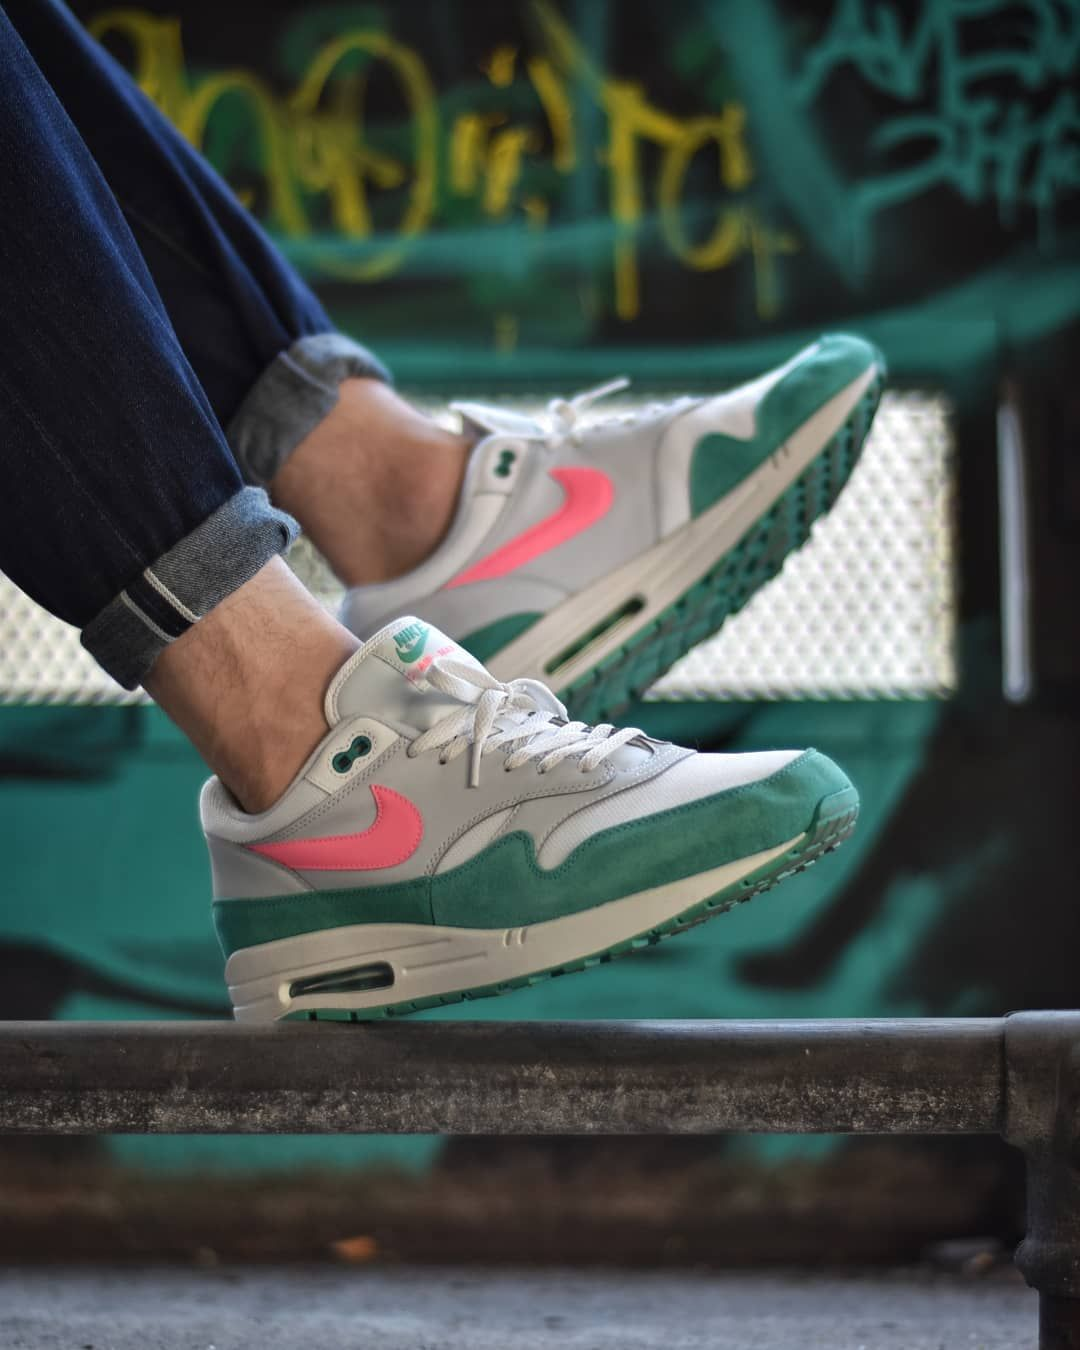 Nike Air Max 1 Watermelon (AH8145 106 ) South Beach USD 135